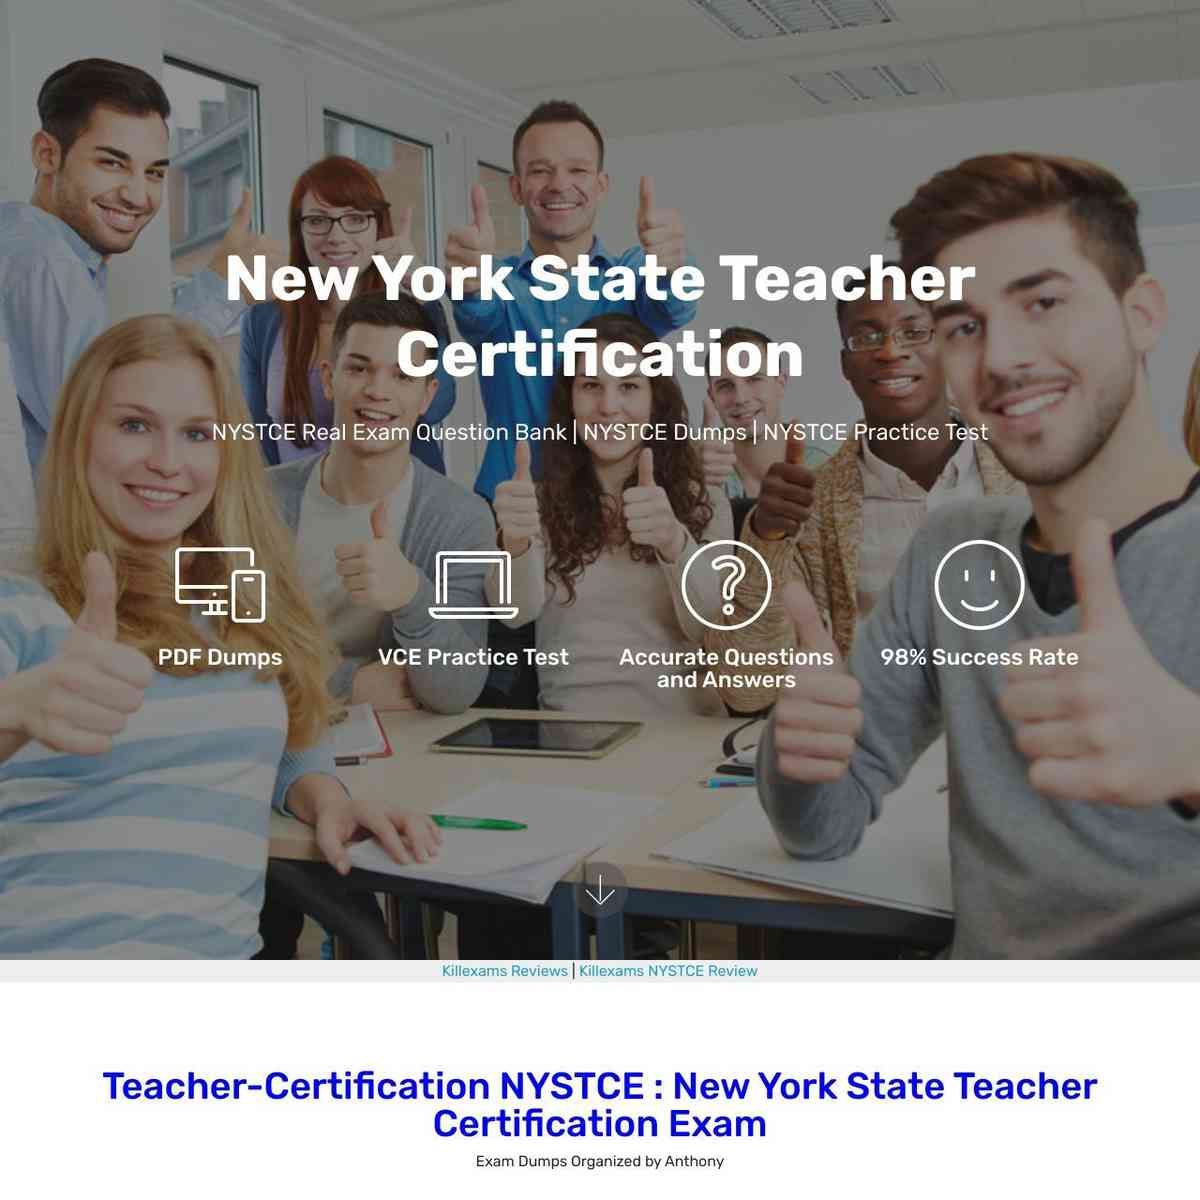 Click and download NYSTCE exam Latest Questions and Exam Questions